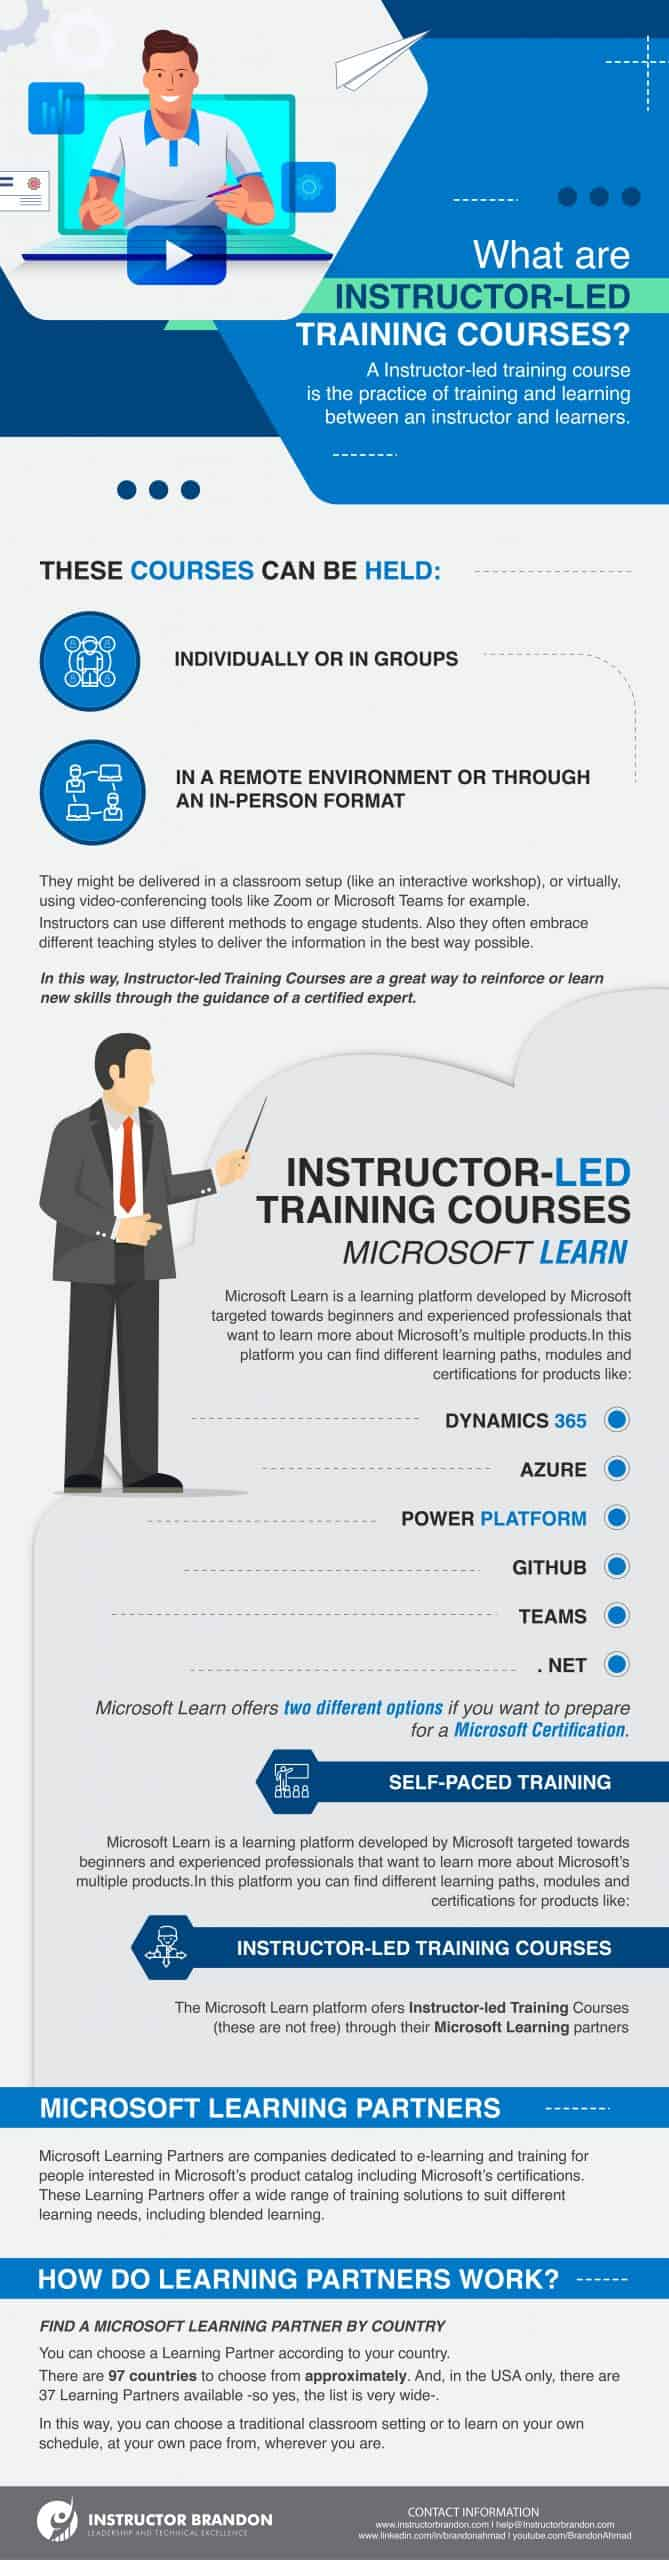 What are Instructor-led Training Courses?